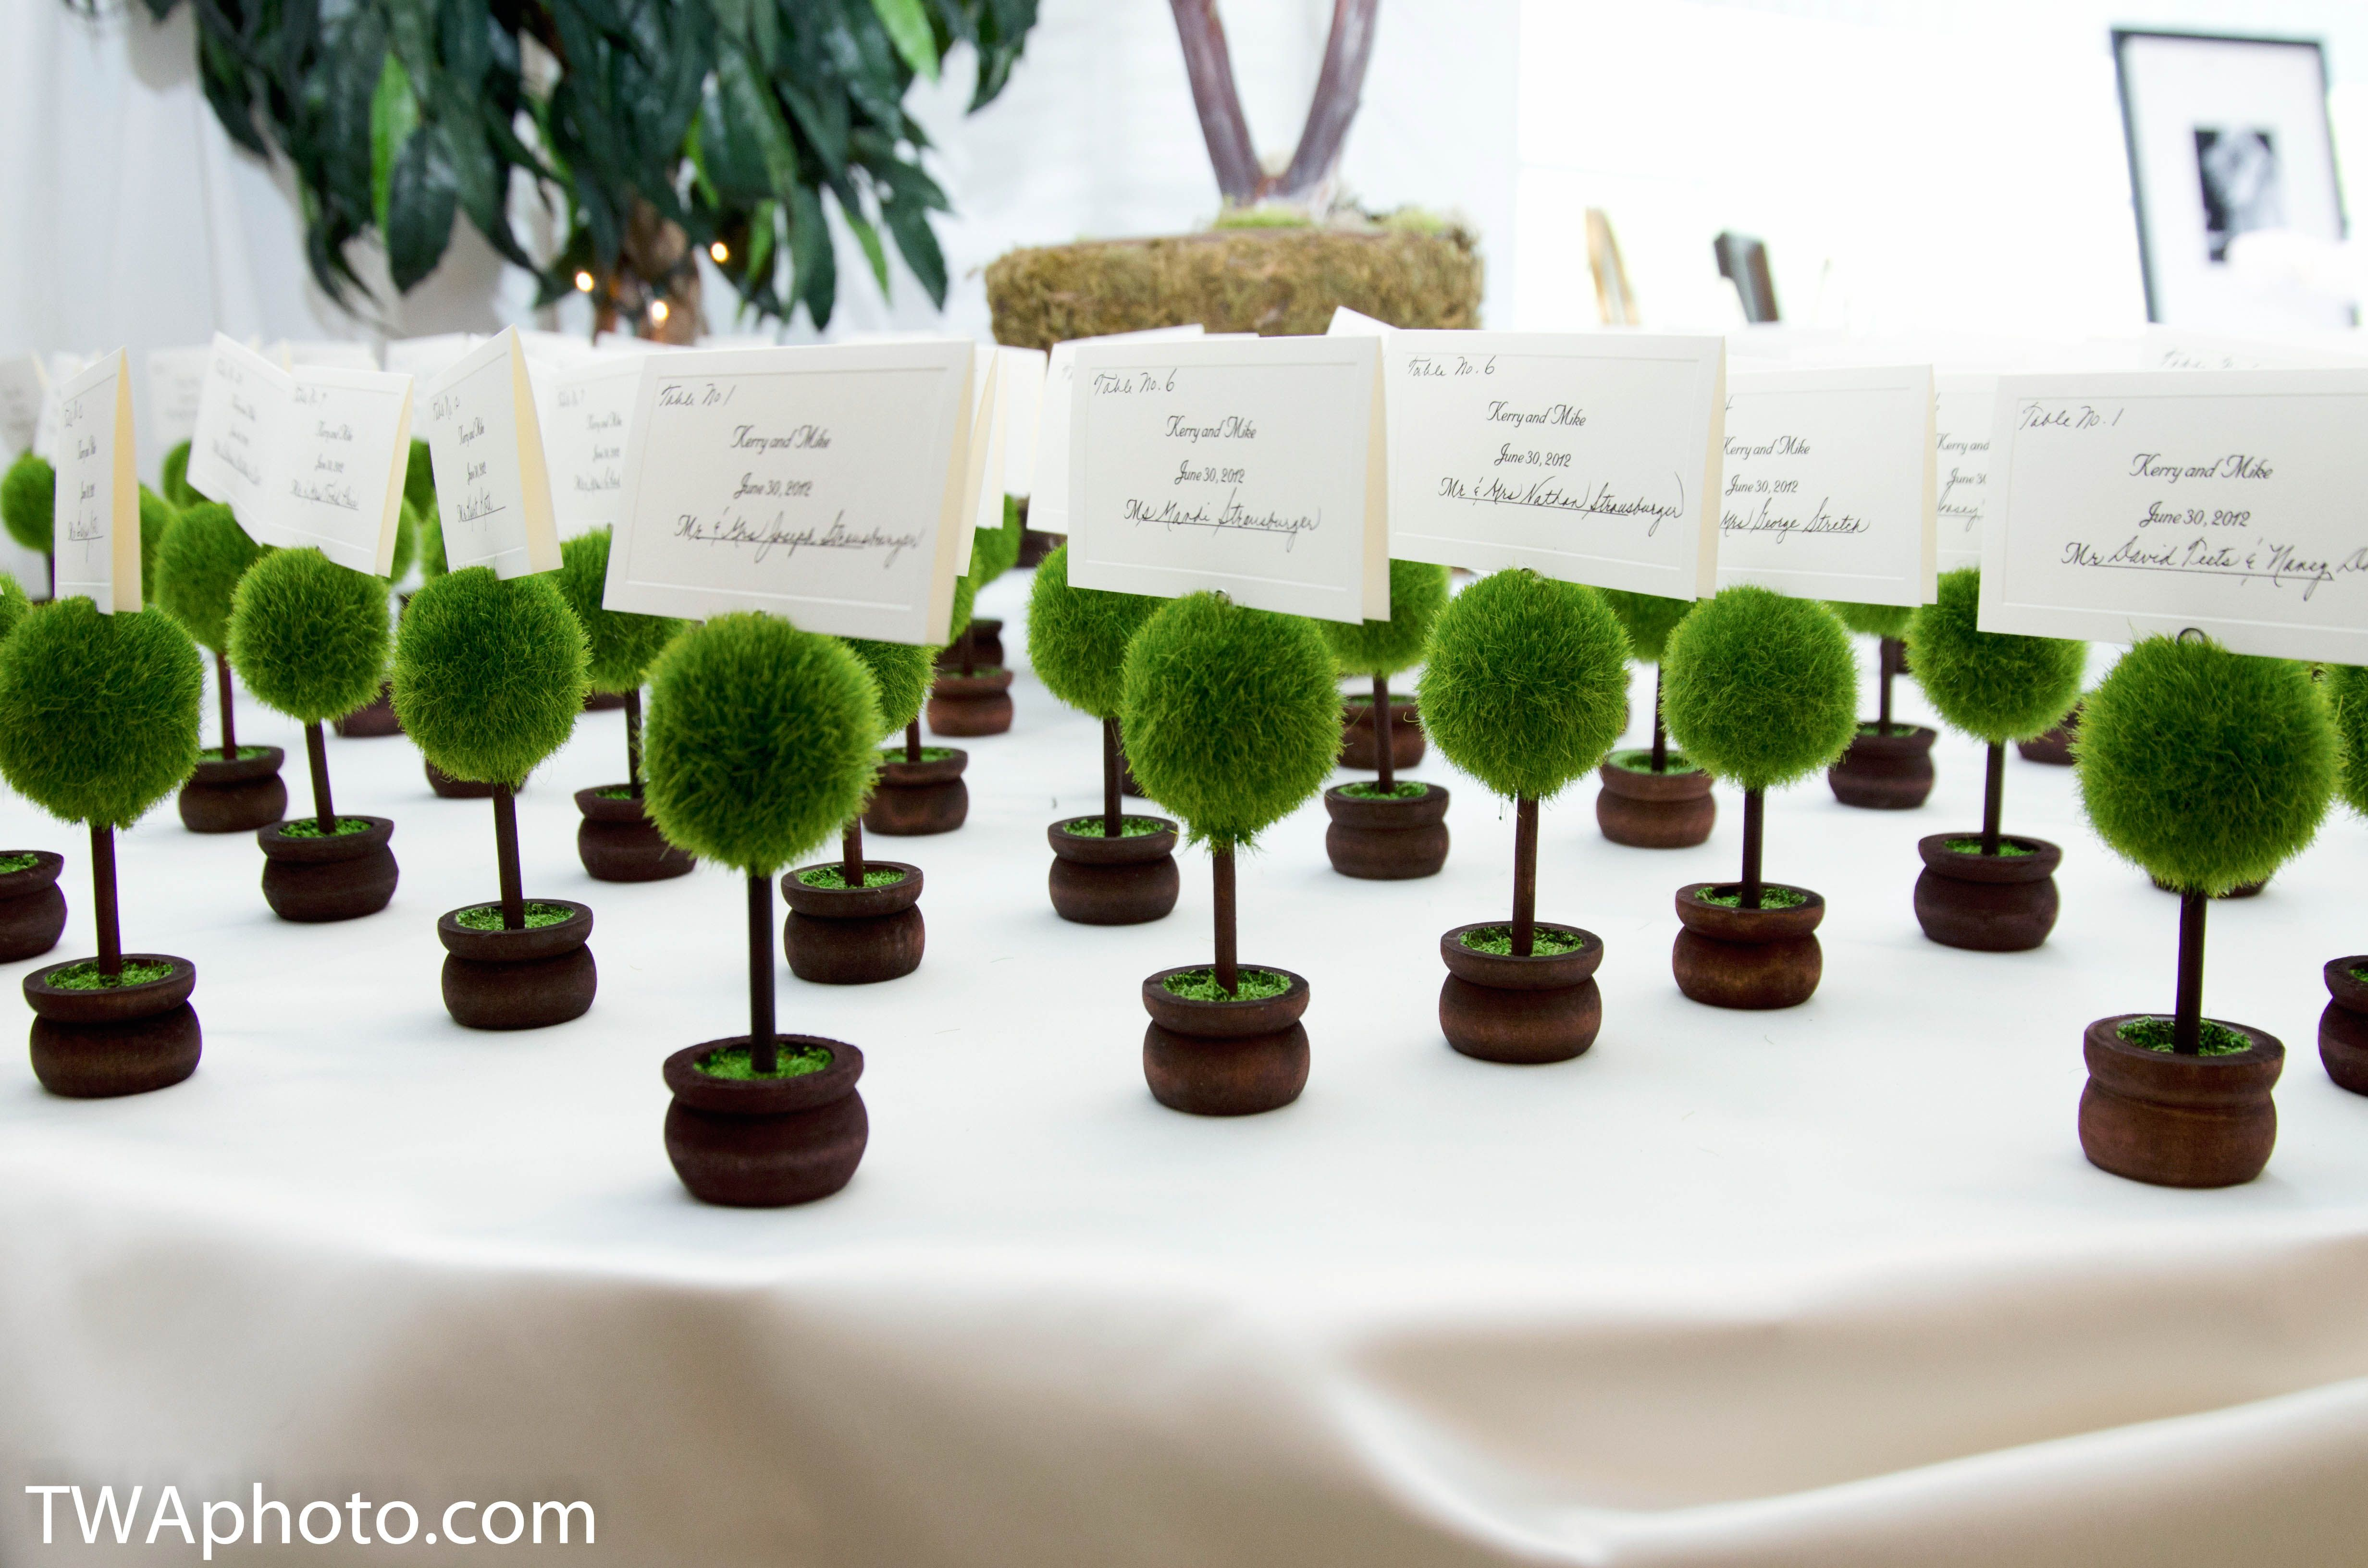 Great idea for placecard holders if you had an outdoor ceremony! #greenwedding www.twaphoto.com